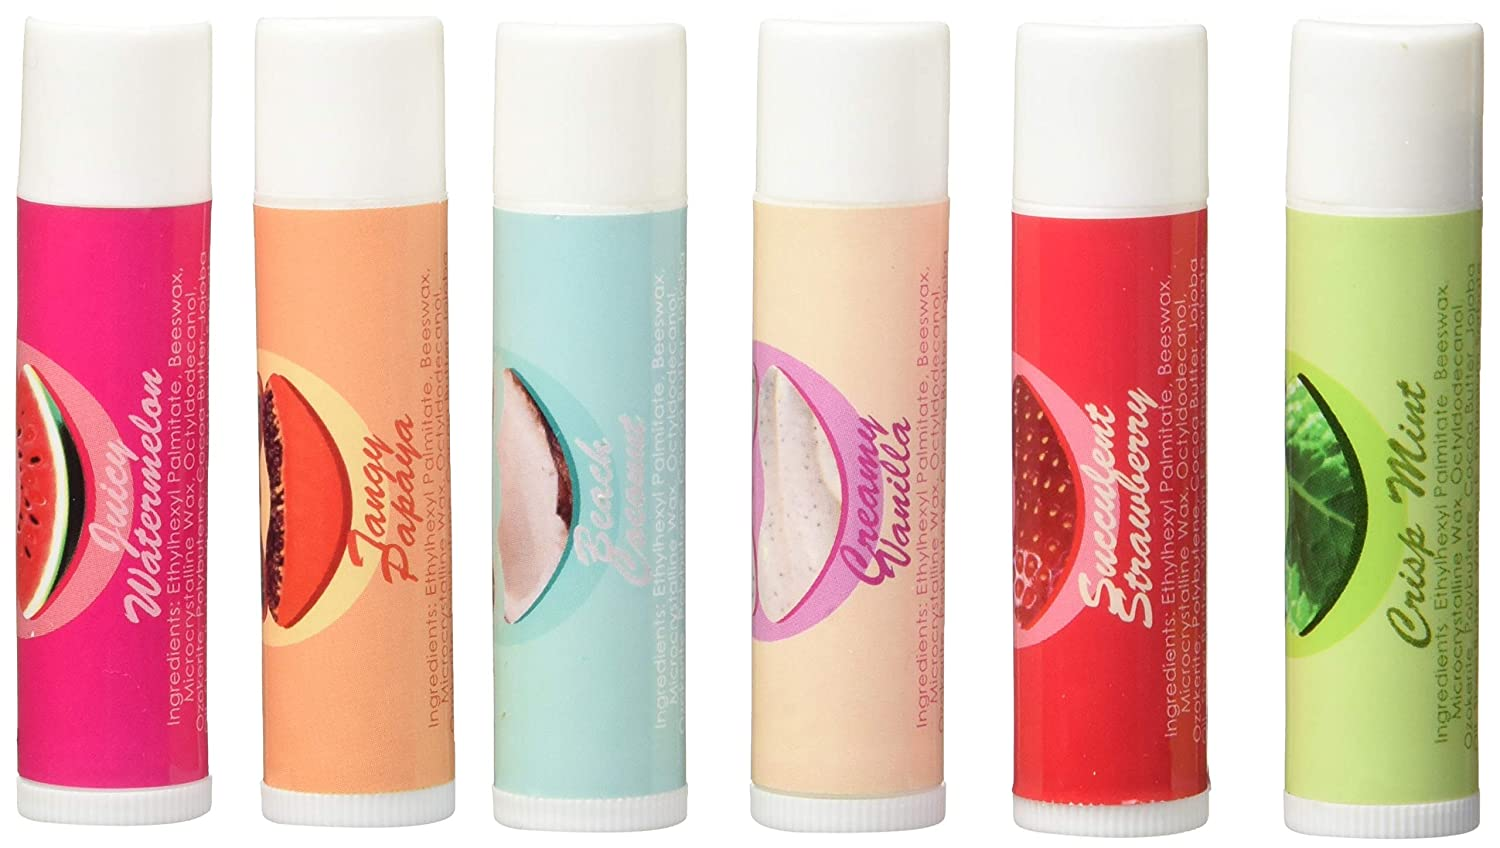 Lip Balm Variety Gift Set - 6 Assorted Flavors Mint Papaya Vanilla Strawberry Watermelon Coconut, Natural Best Lip Plumper Moisturizer Chapstick for Dry Chapped Lips with Vitamin E Coconut Oil Beeswax Premium Nature